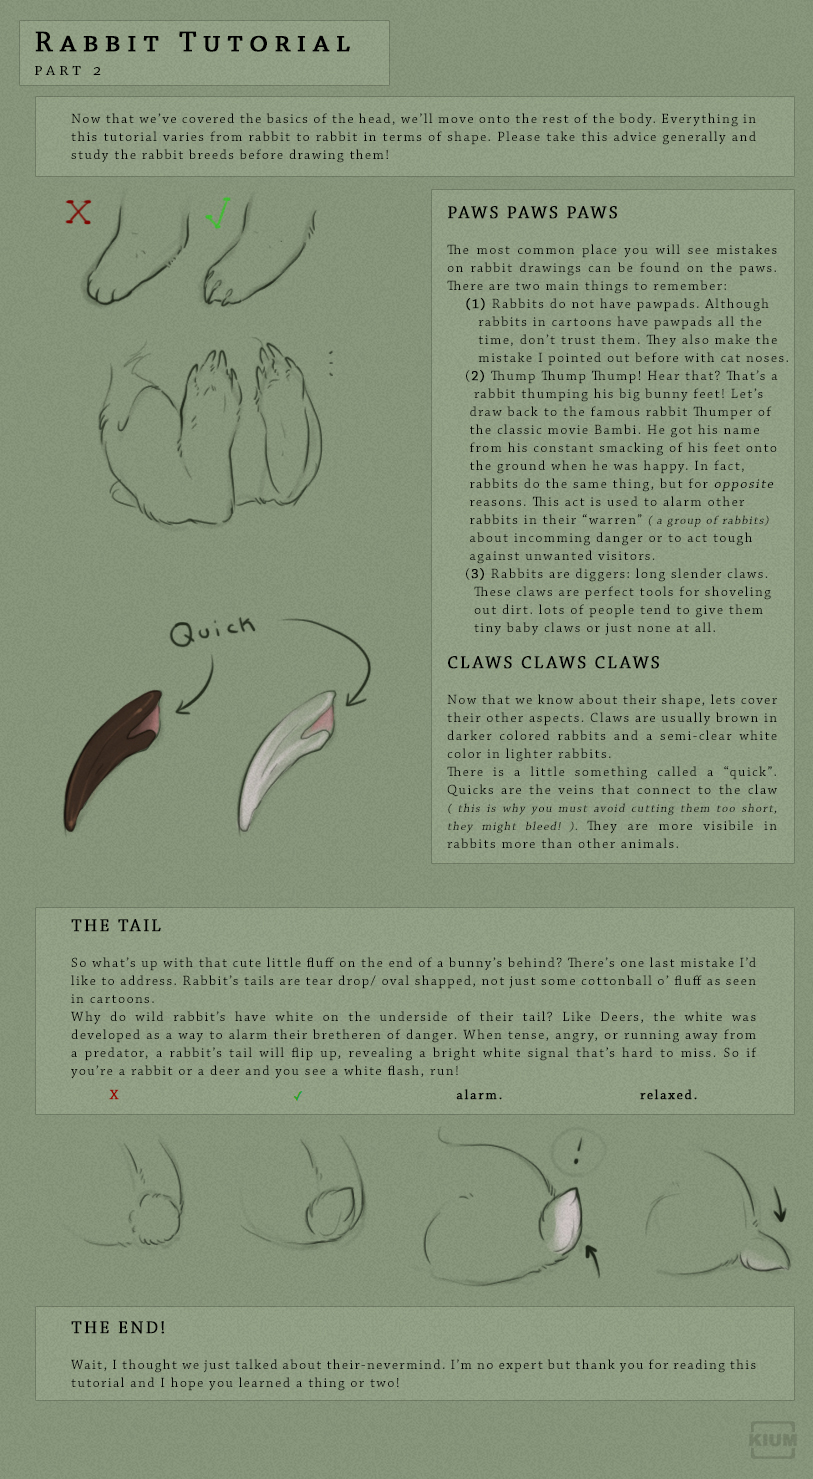 Rabbit tutorial part 2/2 by Kium